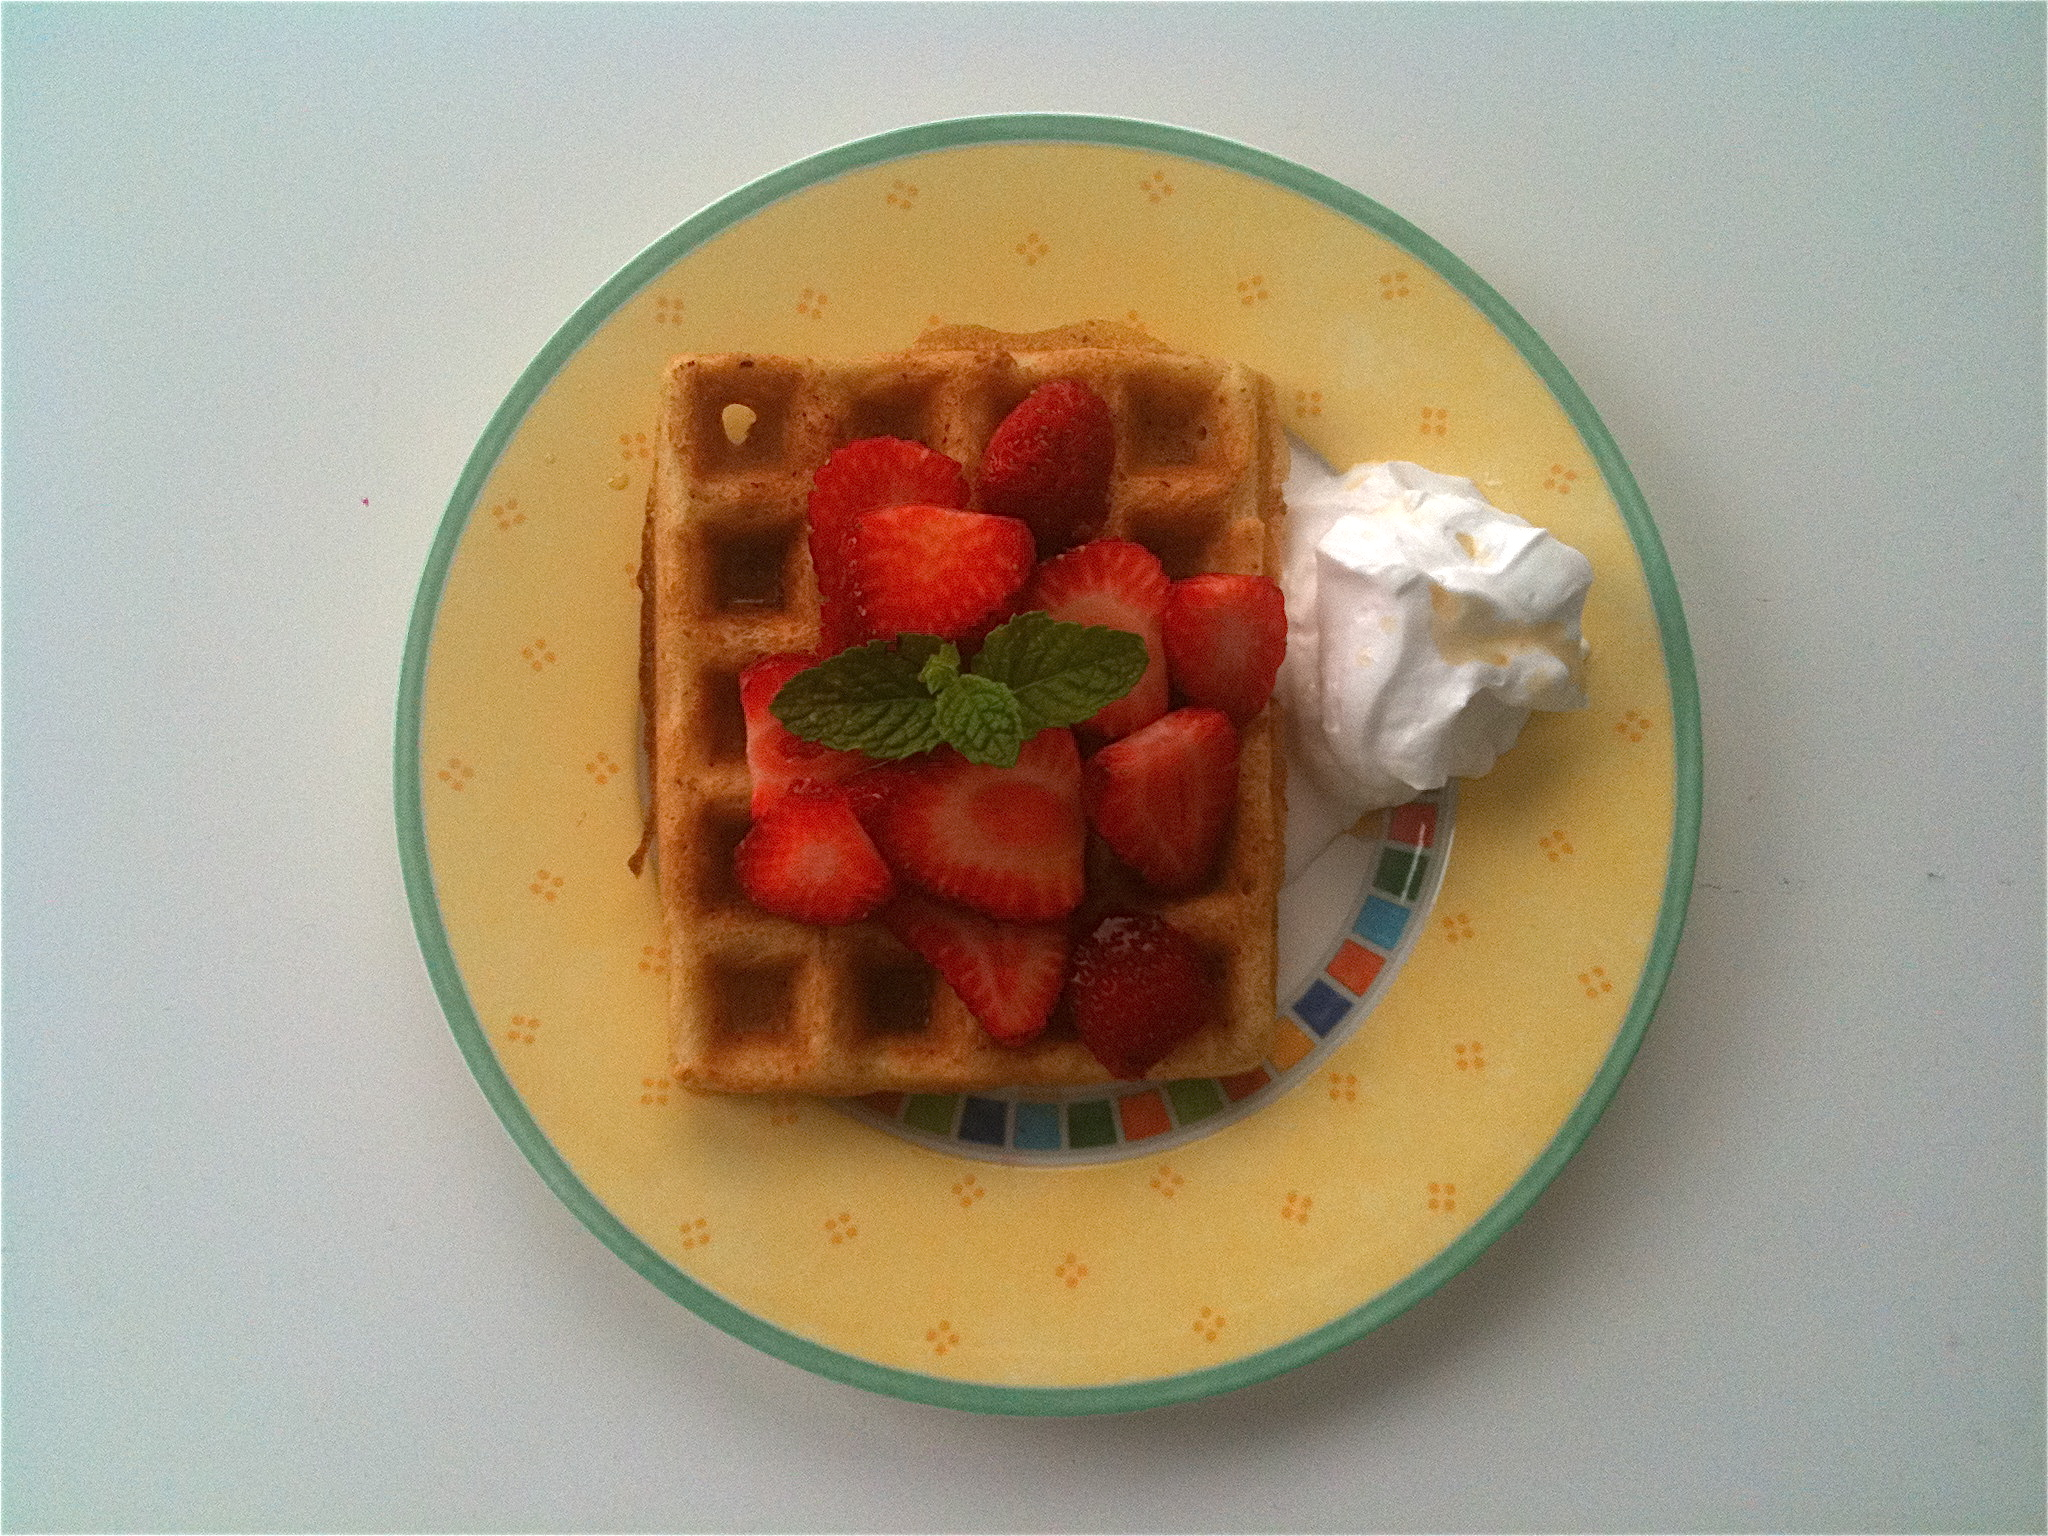 Sunday morning GF waffles for the fresh strawberries...